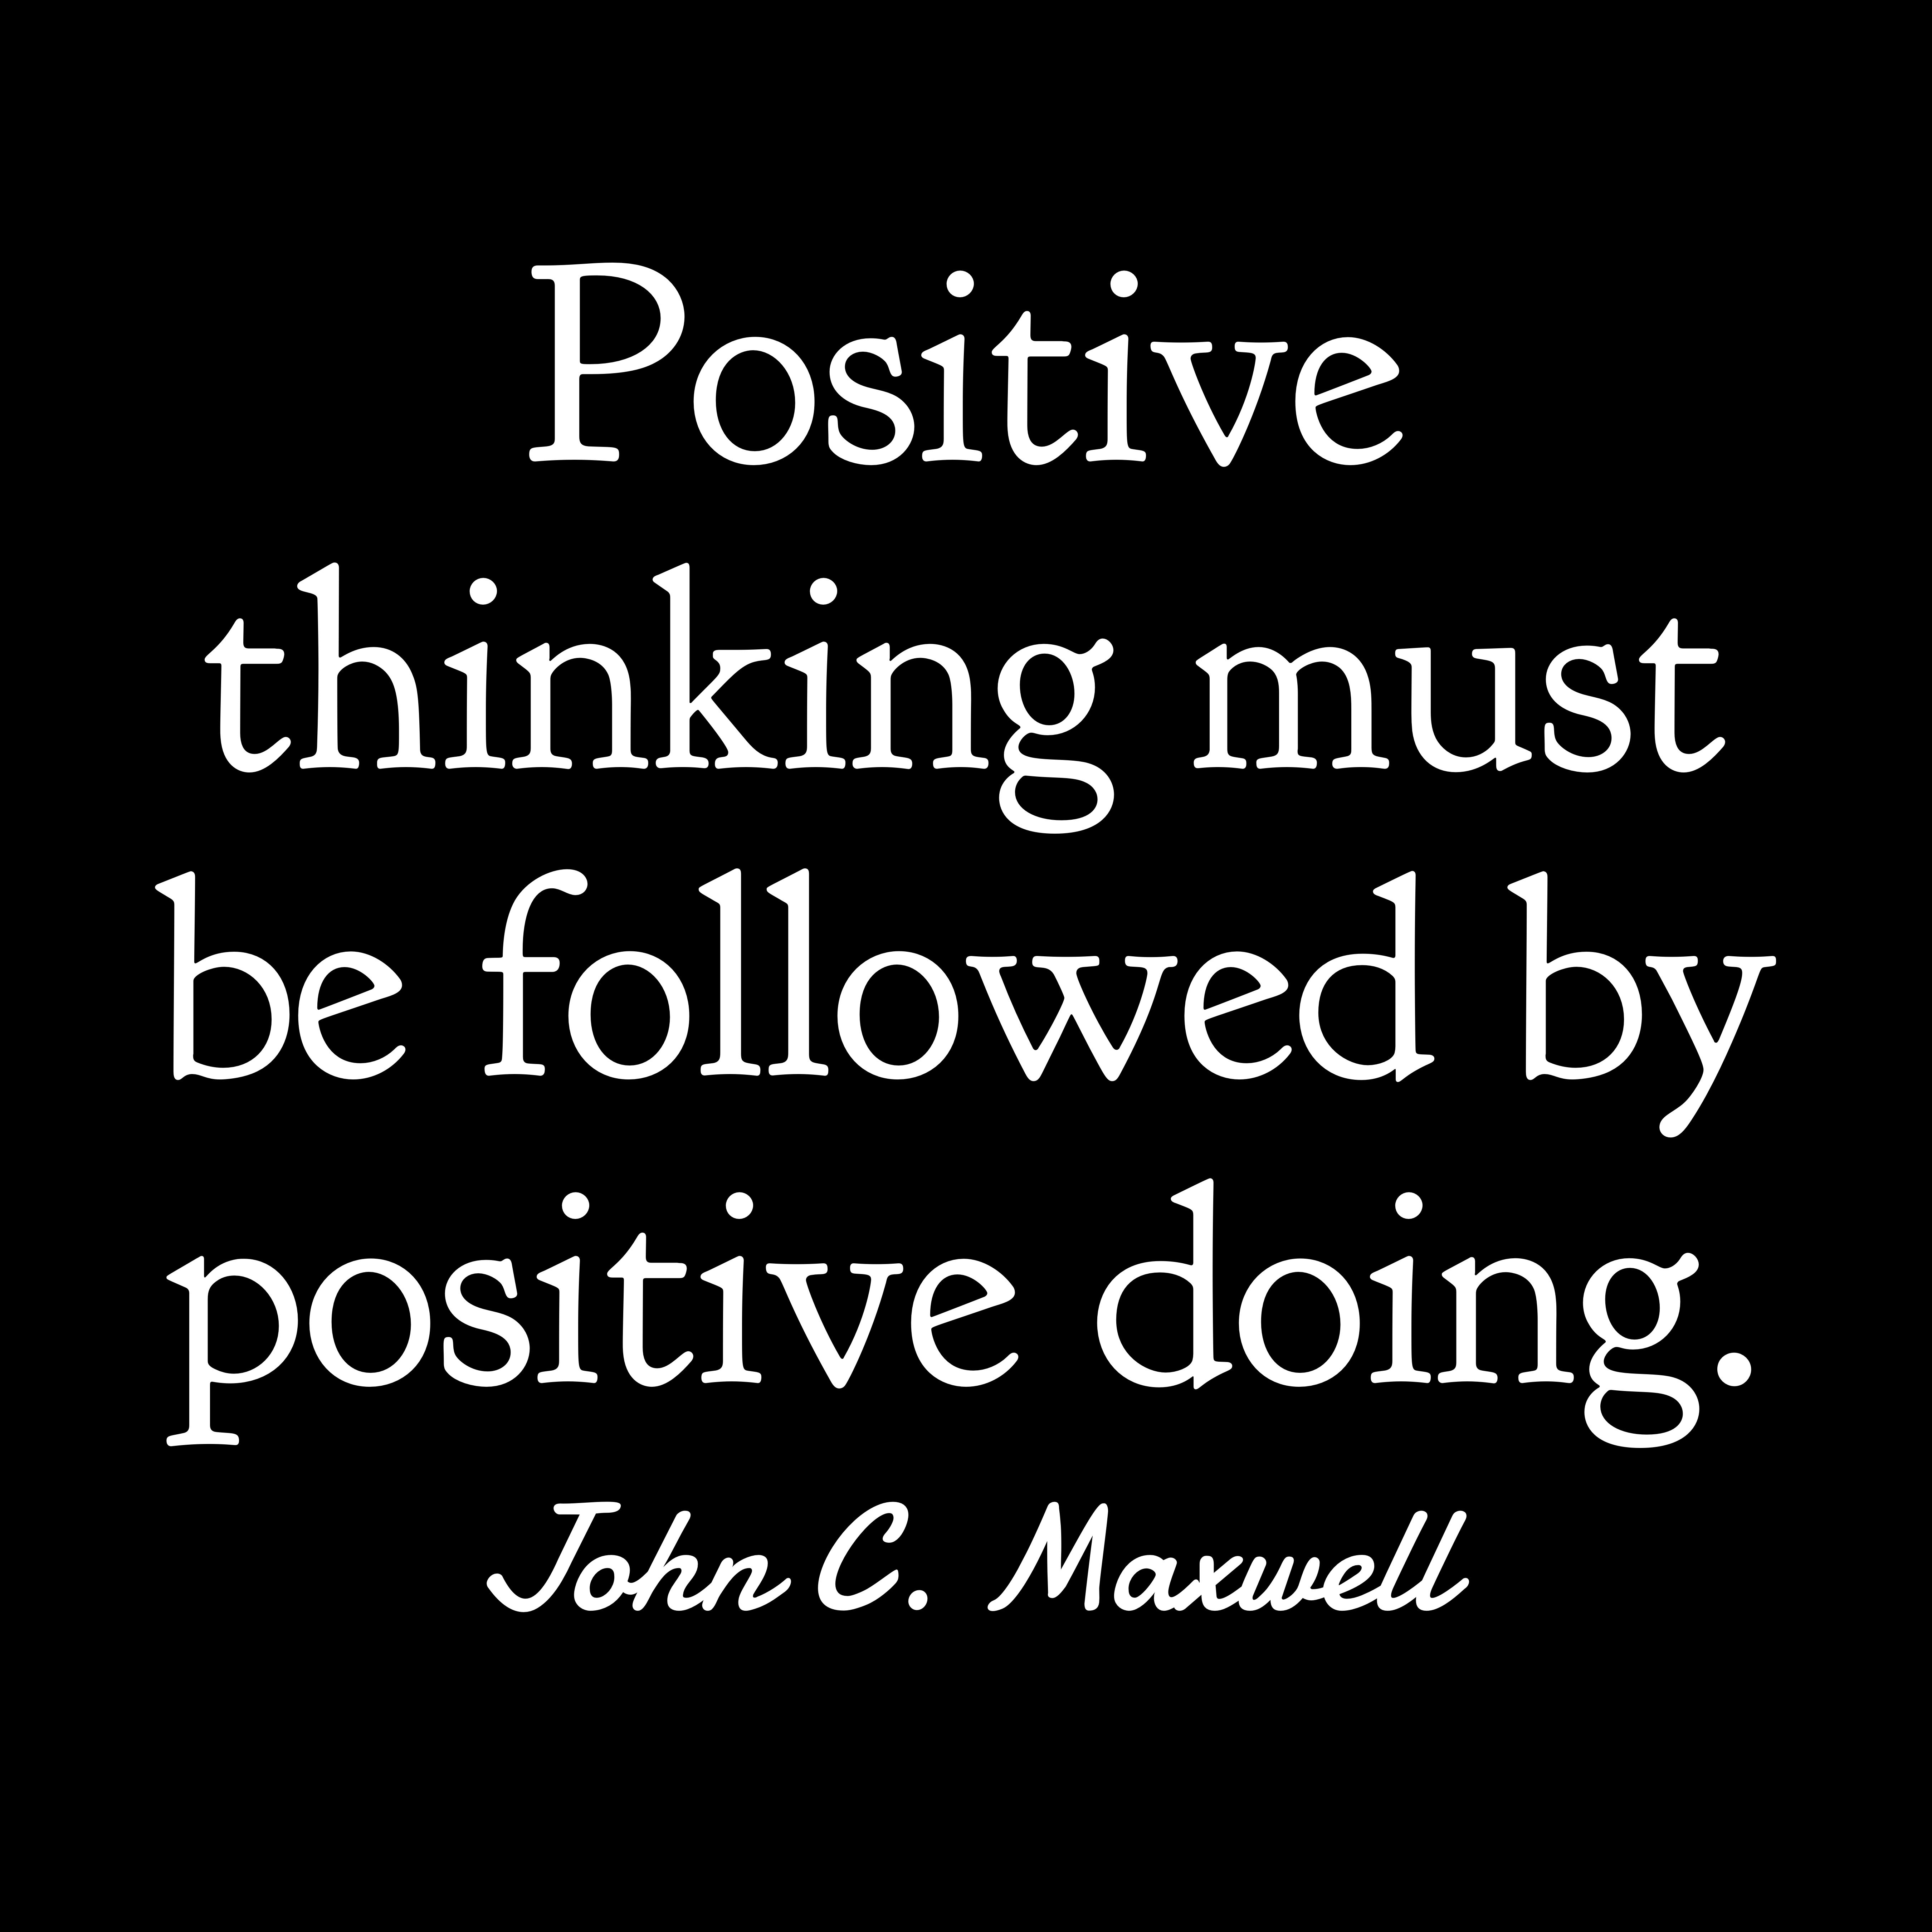 50 Positive Quotes To Brighten Your Day Positive Quotes Famous